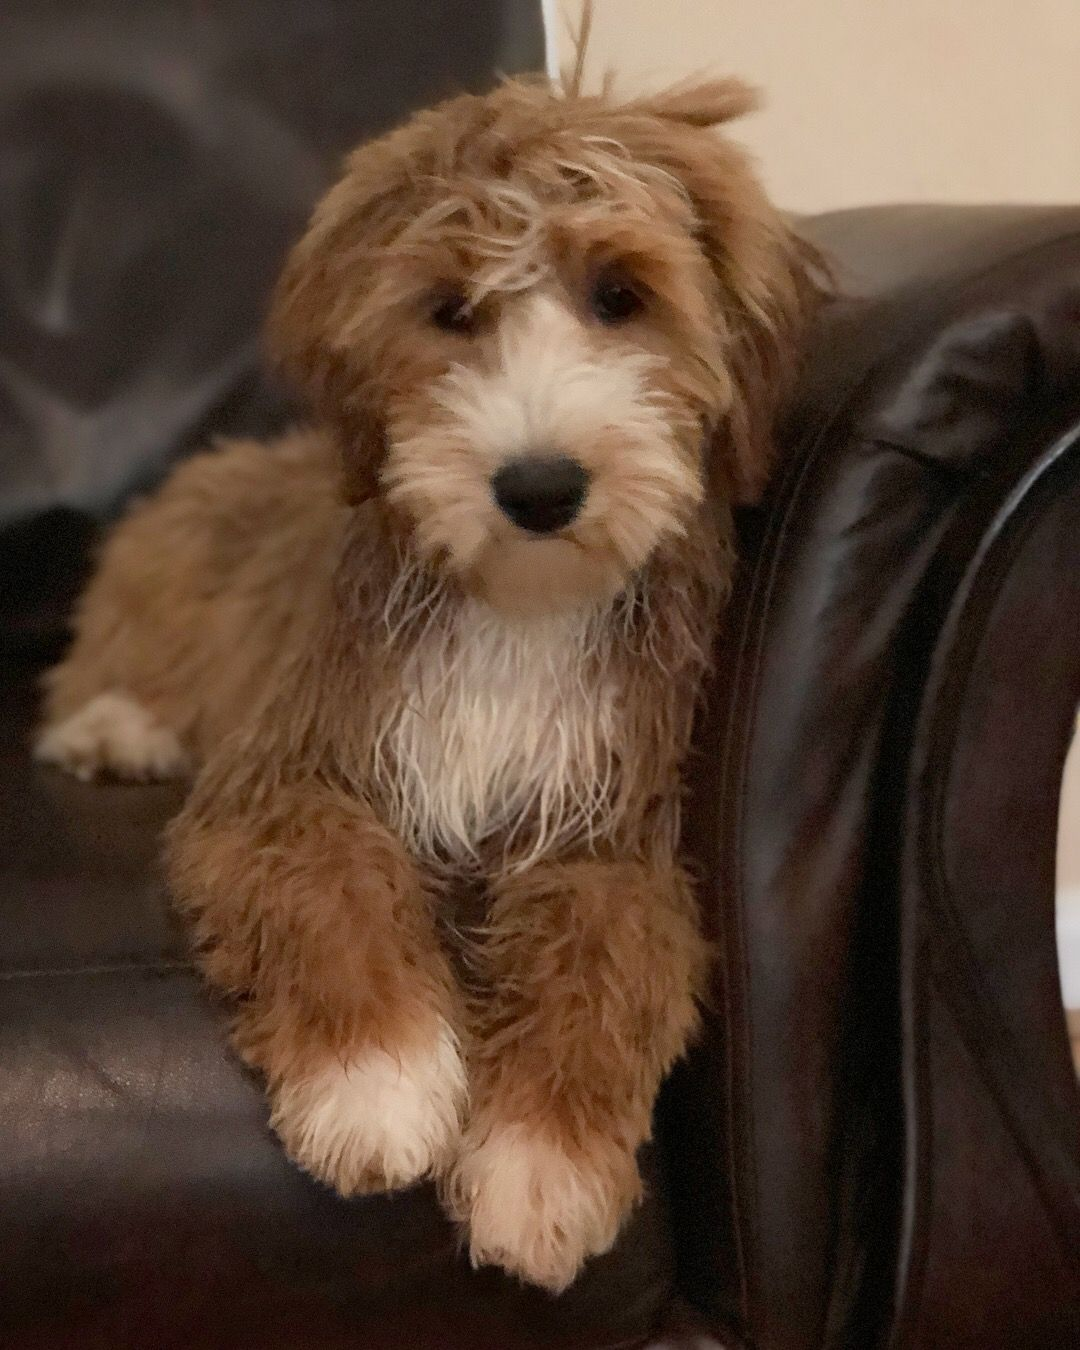 After her bath! Tuxedo Goldendoodle puppy, Candy Doodles